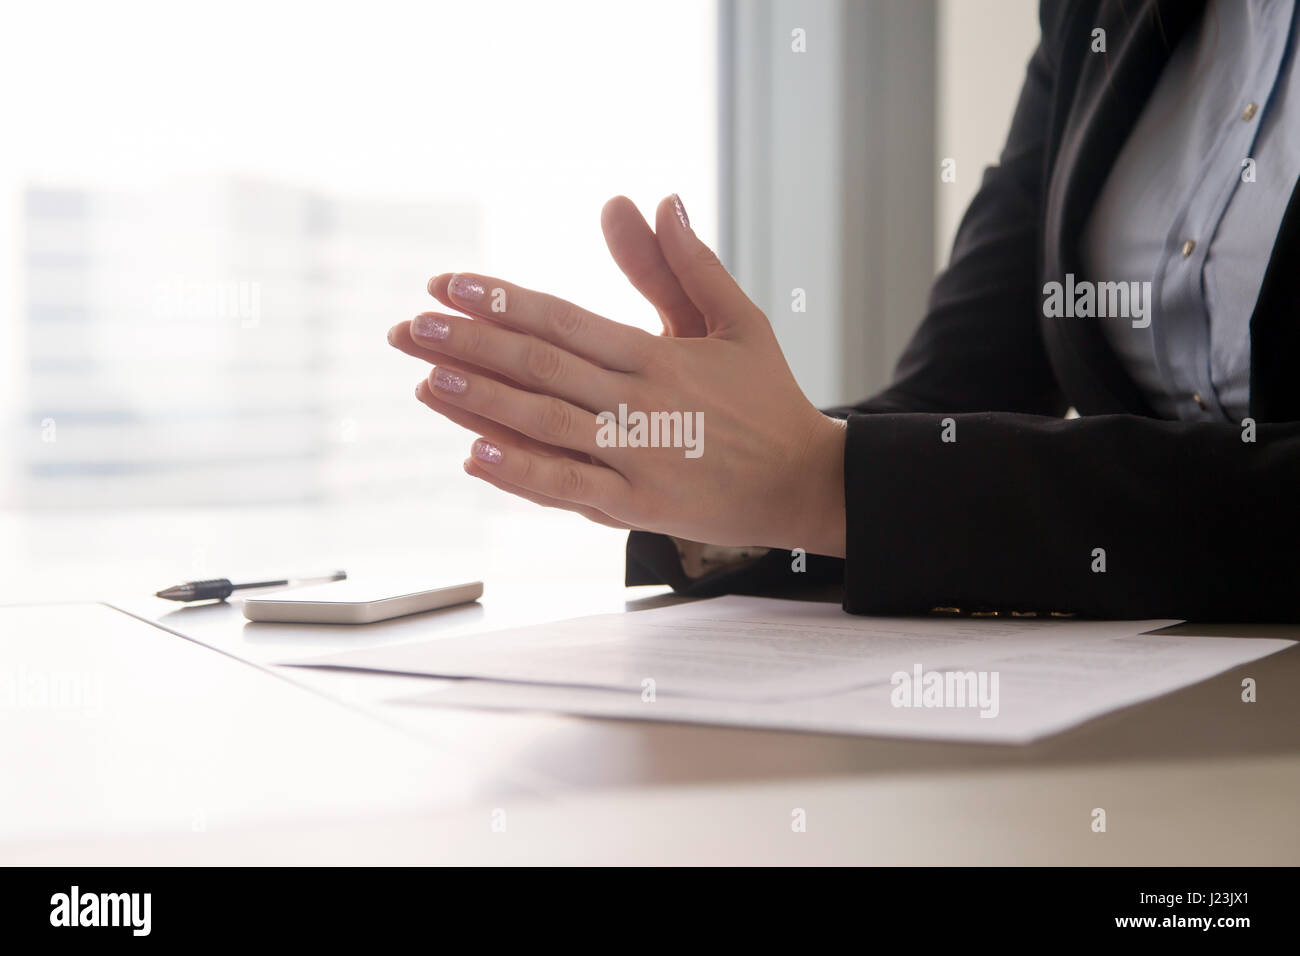 Close up of female hands put together, concentration or nerves Stock Photo